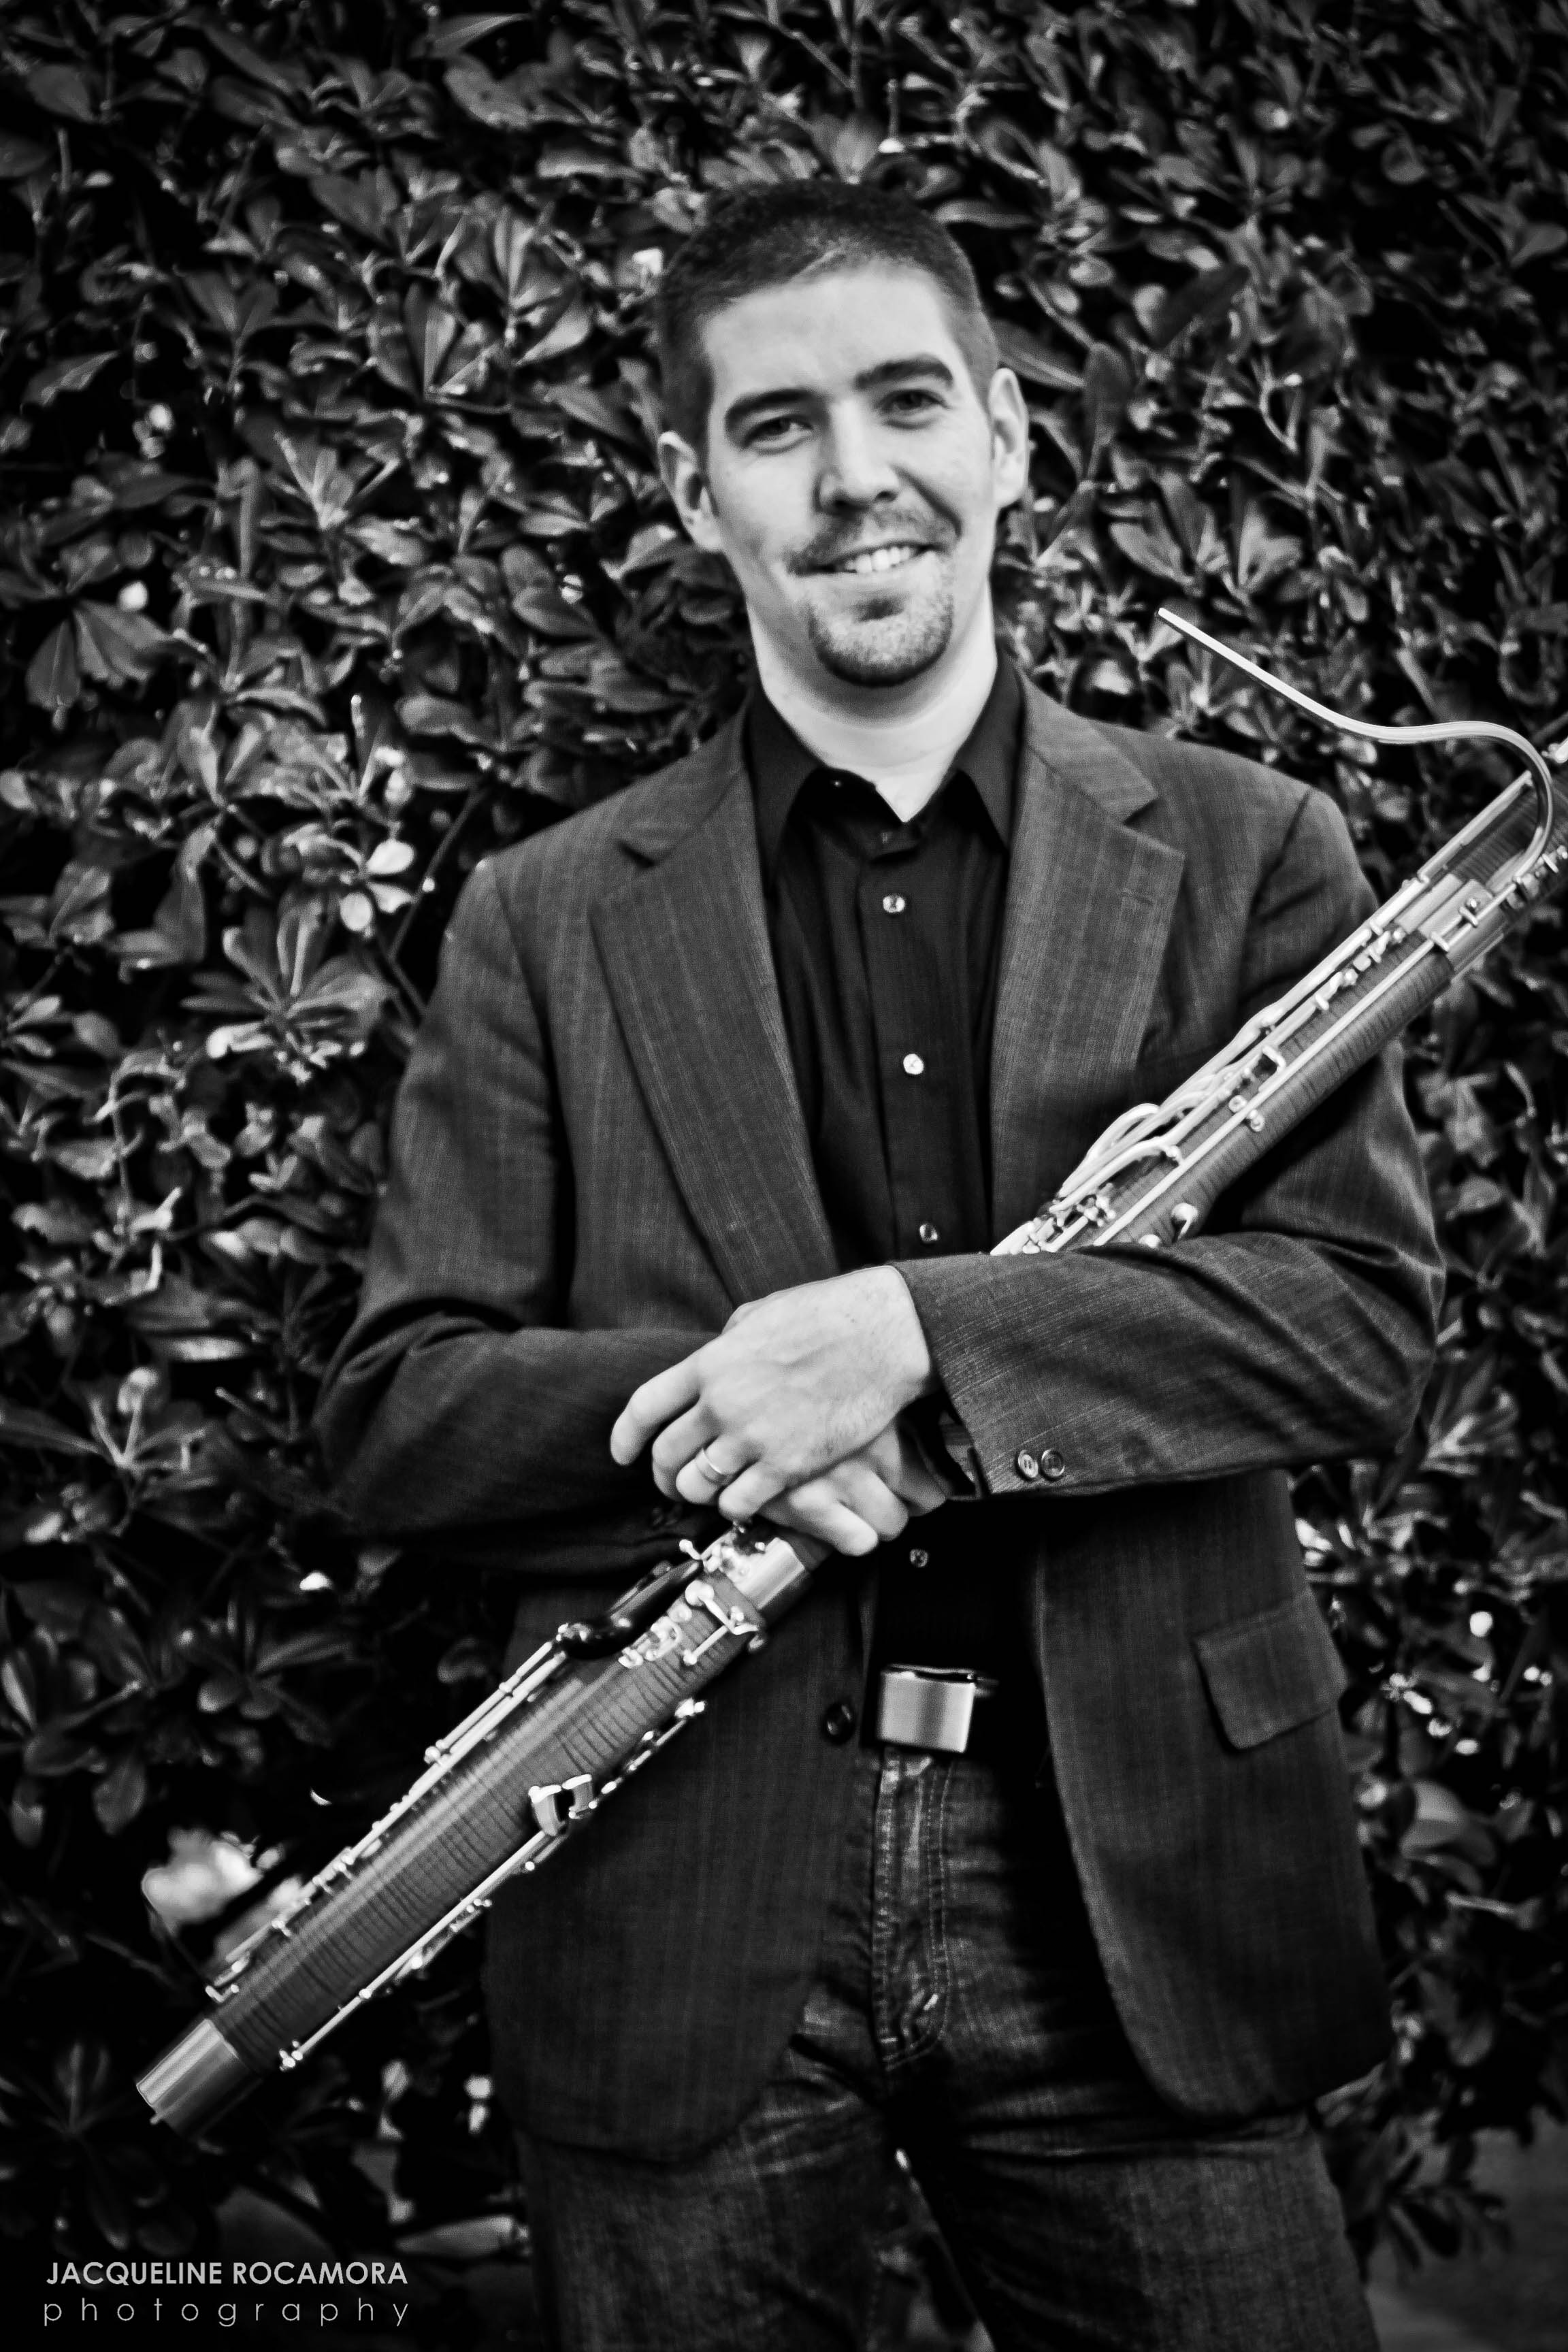 We are VERY excited to announce that David Wells will be joining us in Phoenix, AZ for our first recording. David performed with MACP during their residency at the University of the Pacific this past March.